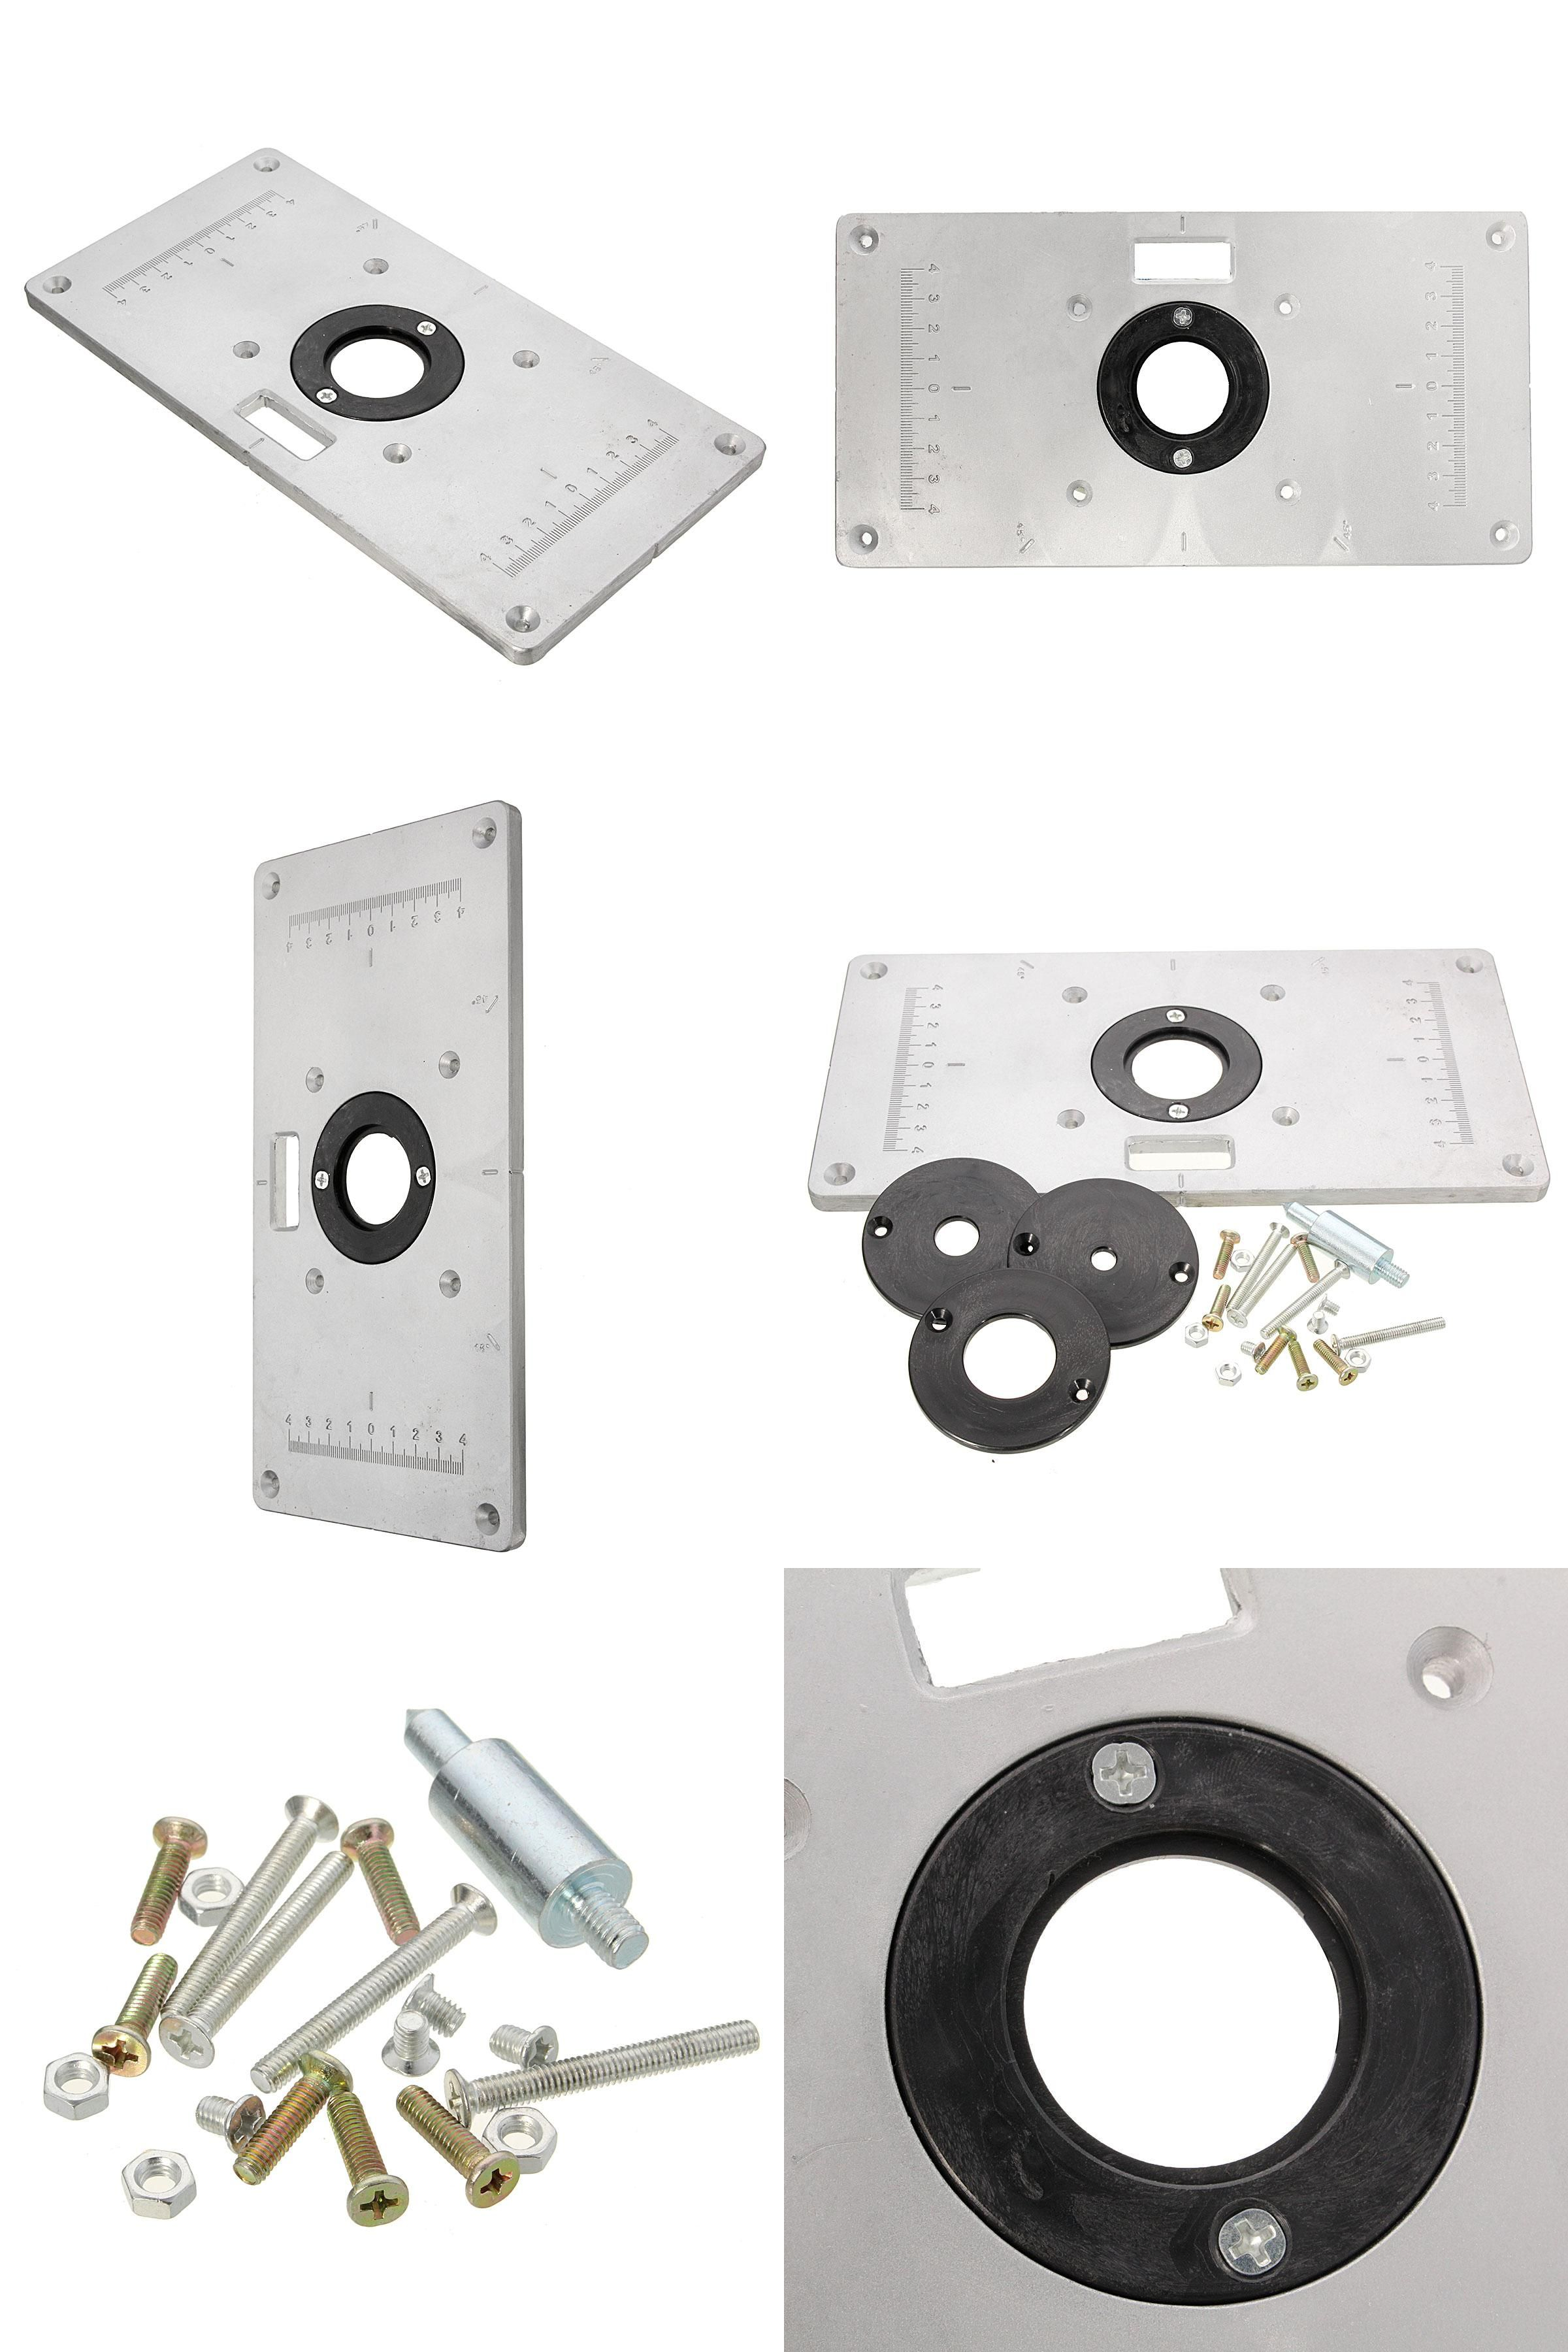 Diy router table insert plate -  Visit To Buy High Quality 1pc 235mm 120mm 8mm Router Table Insert